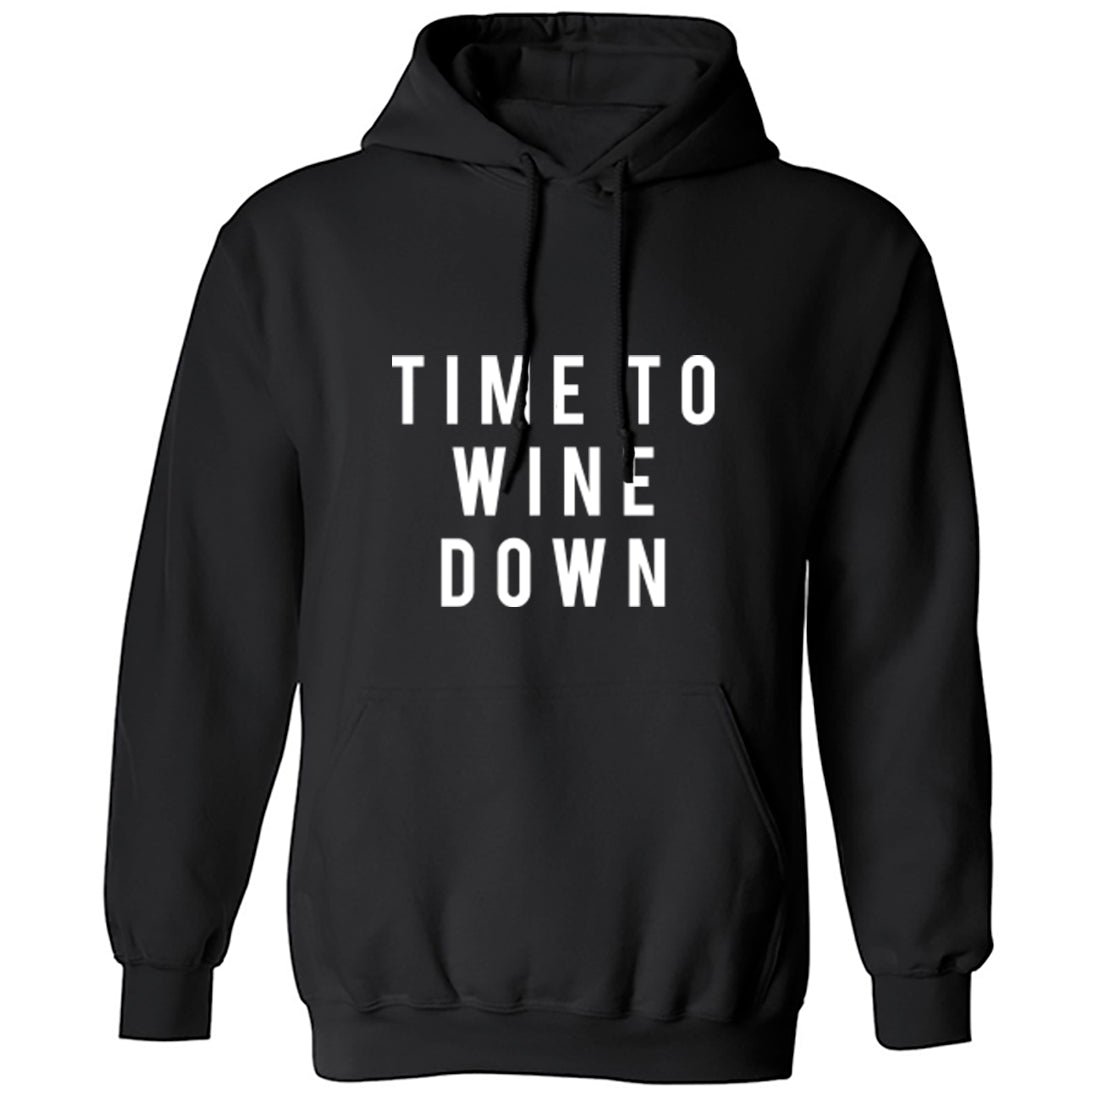 Time To Wine Down Unisex Hoodie K1301 - Illustrated Identity Ltd.